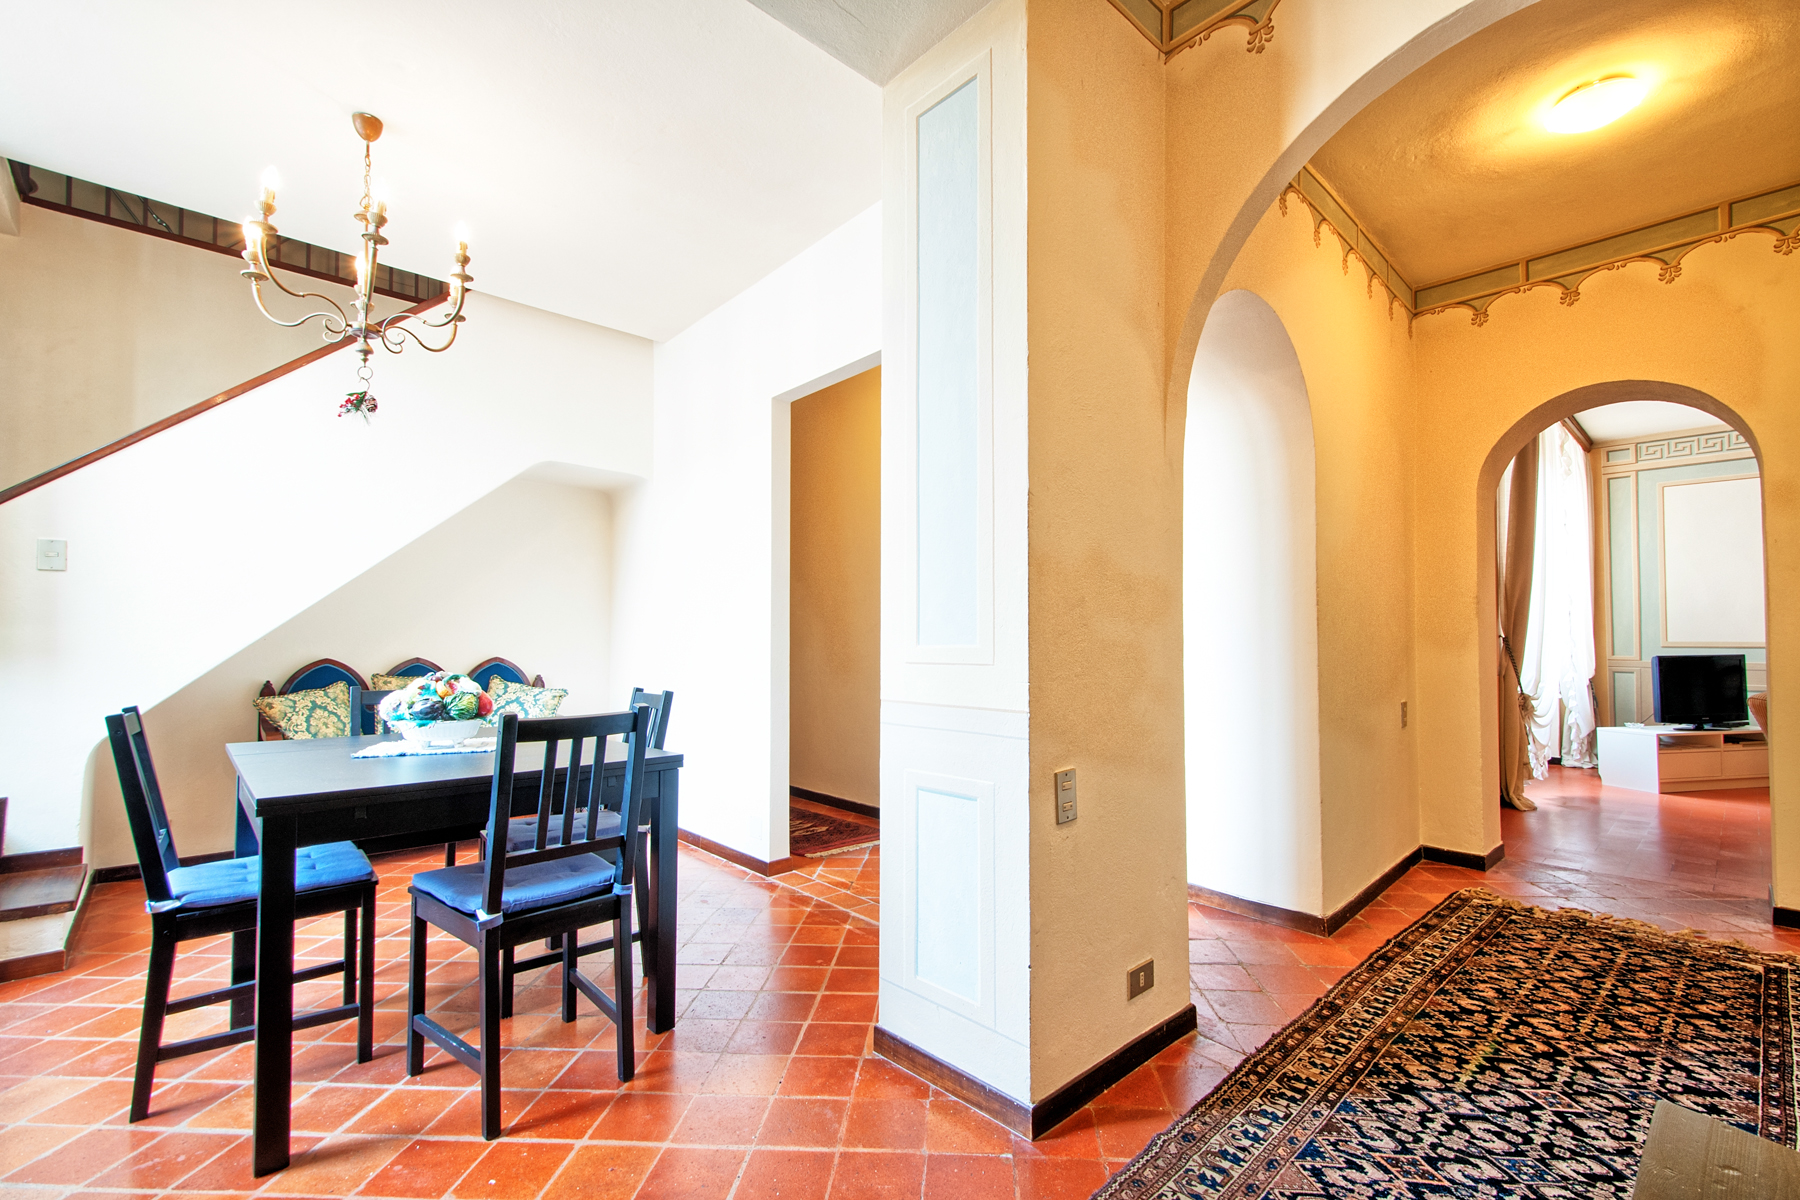 Additional photo for property listing at Elegant apartment in historical building Centro Storico, Lucca, Lucca Italy